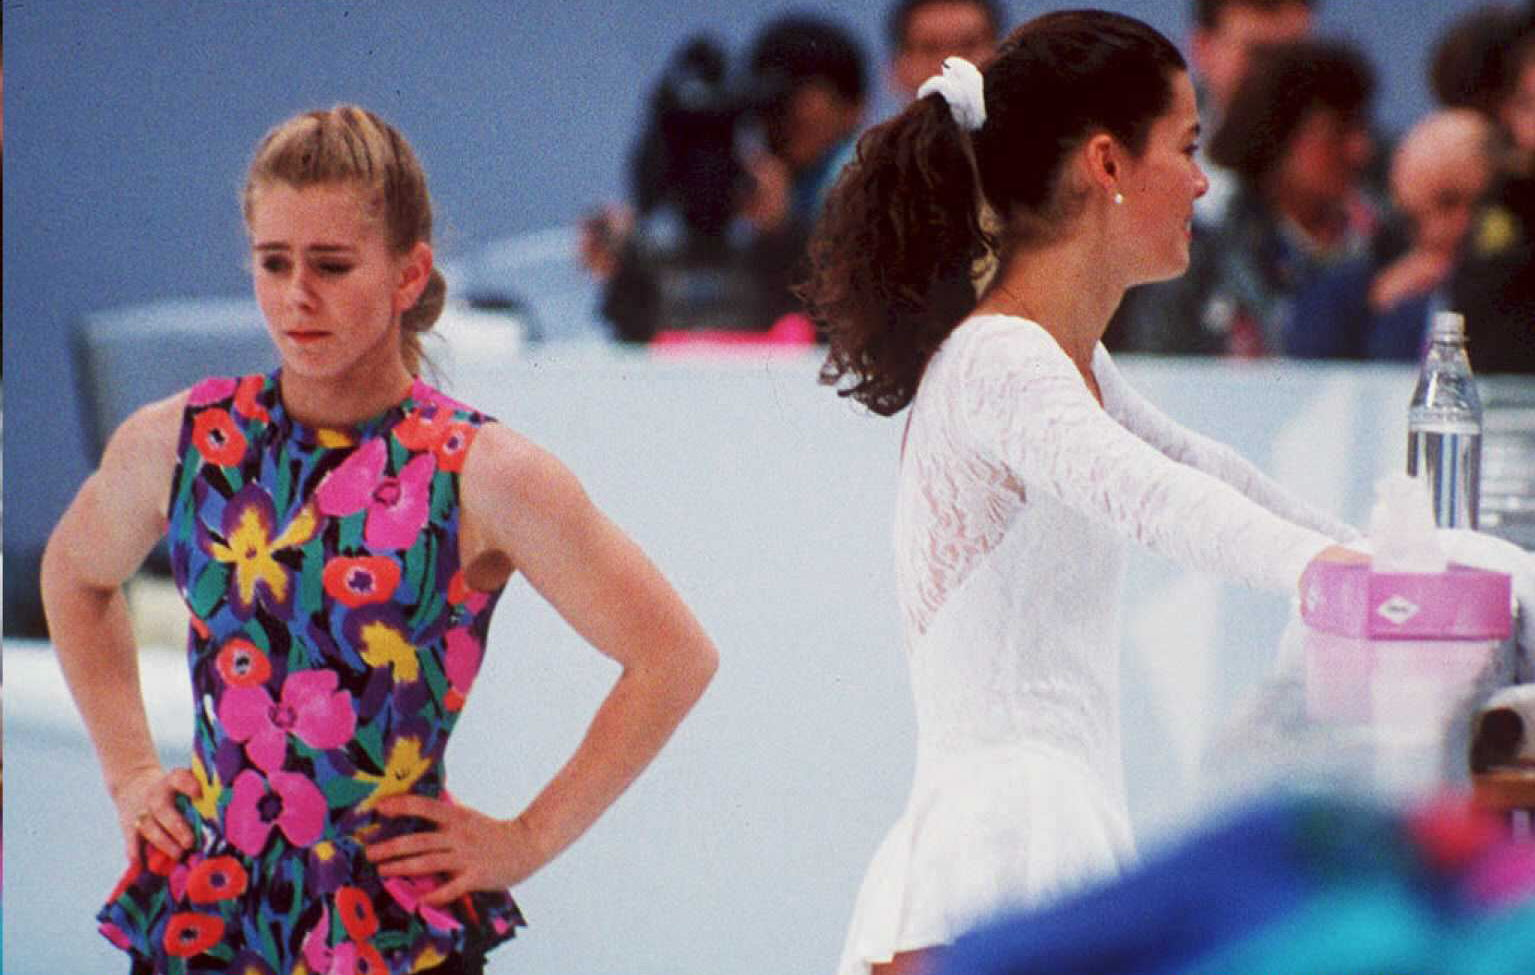 U.S. figure skaters Tonya Harding (L) and Nancy Kerrigan avoid each other during a training session on Feb. 17 in Hamar, Norway, during the 1994 Winter Olympics.